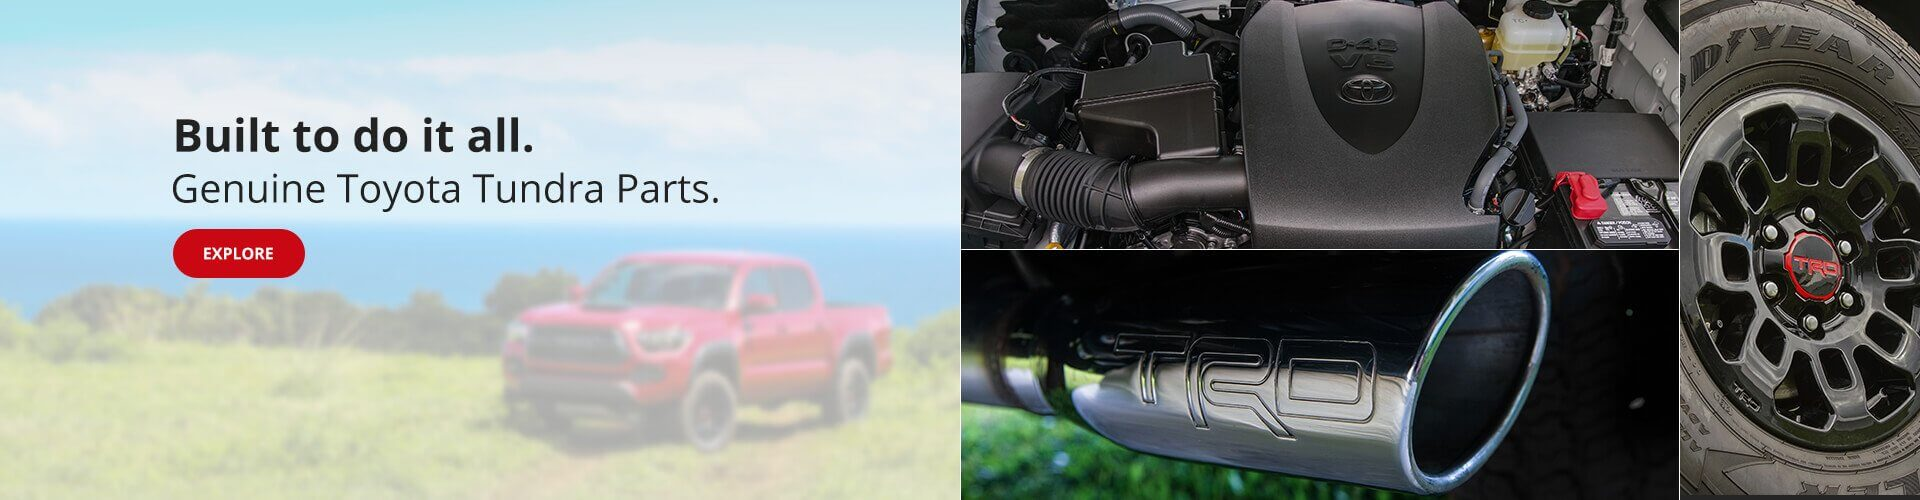 Genuine Toyota Tundra Parts & Accessories